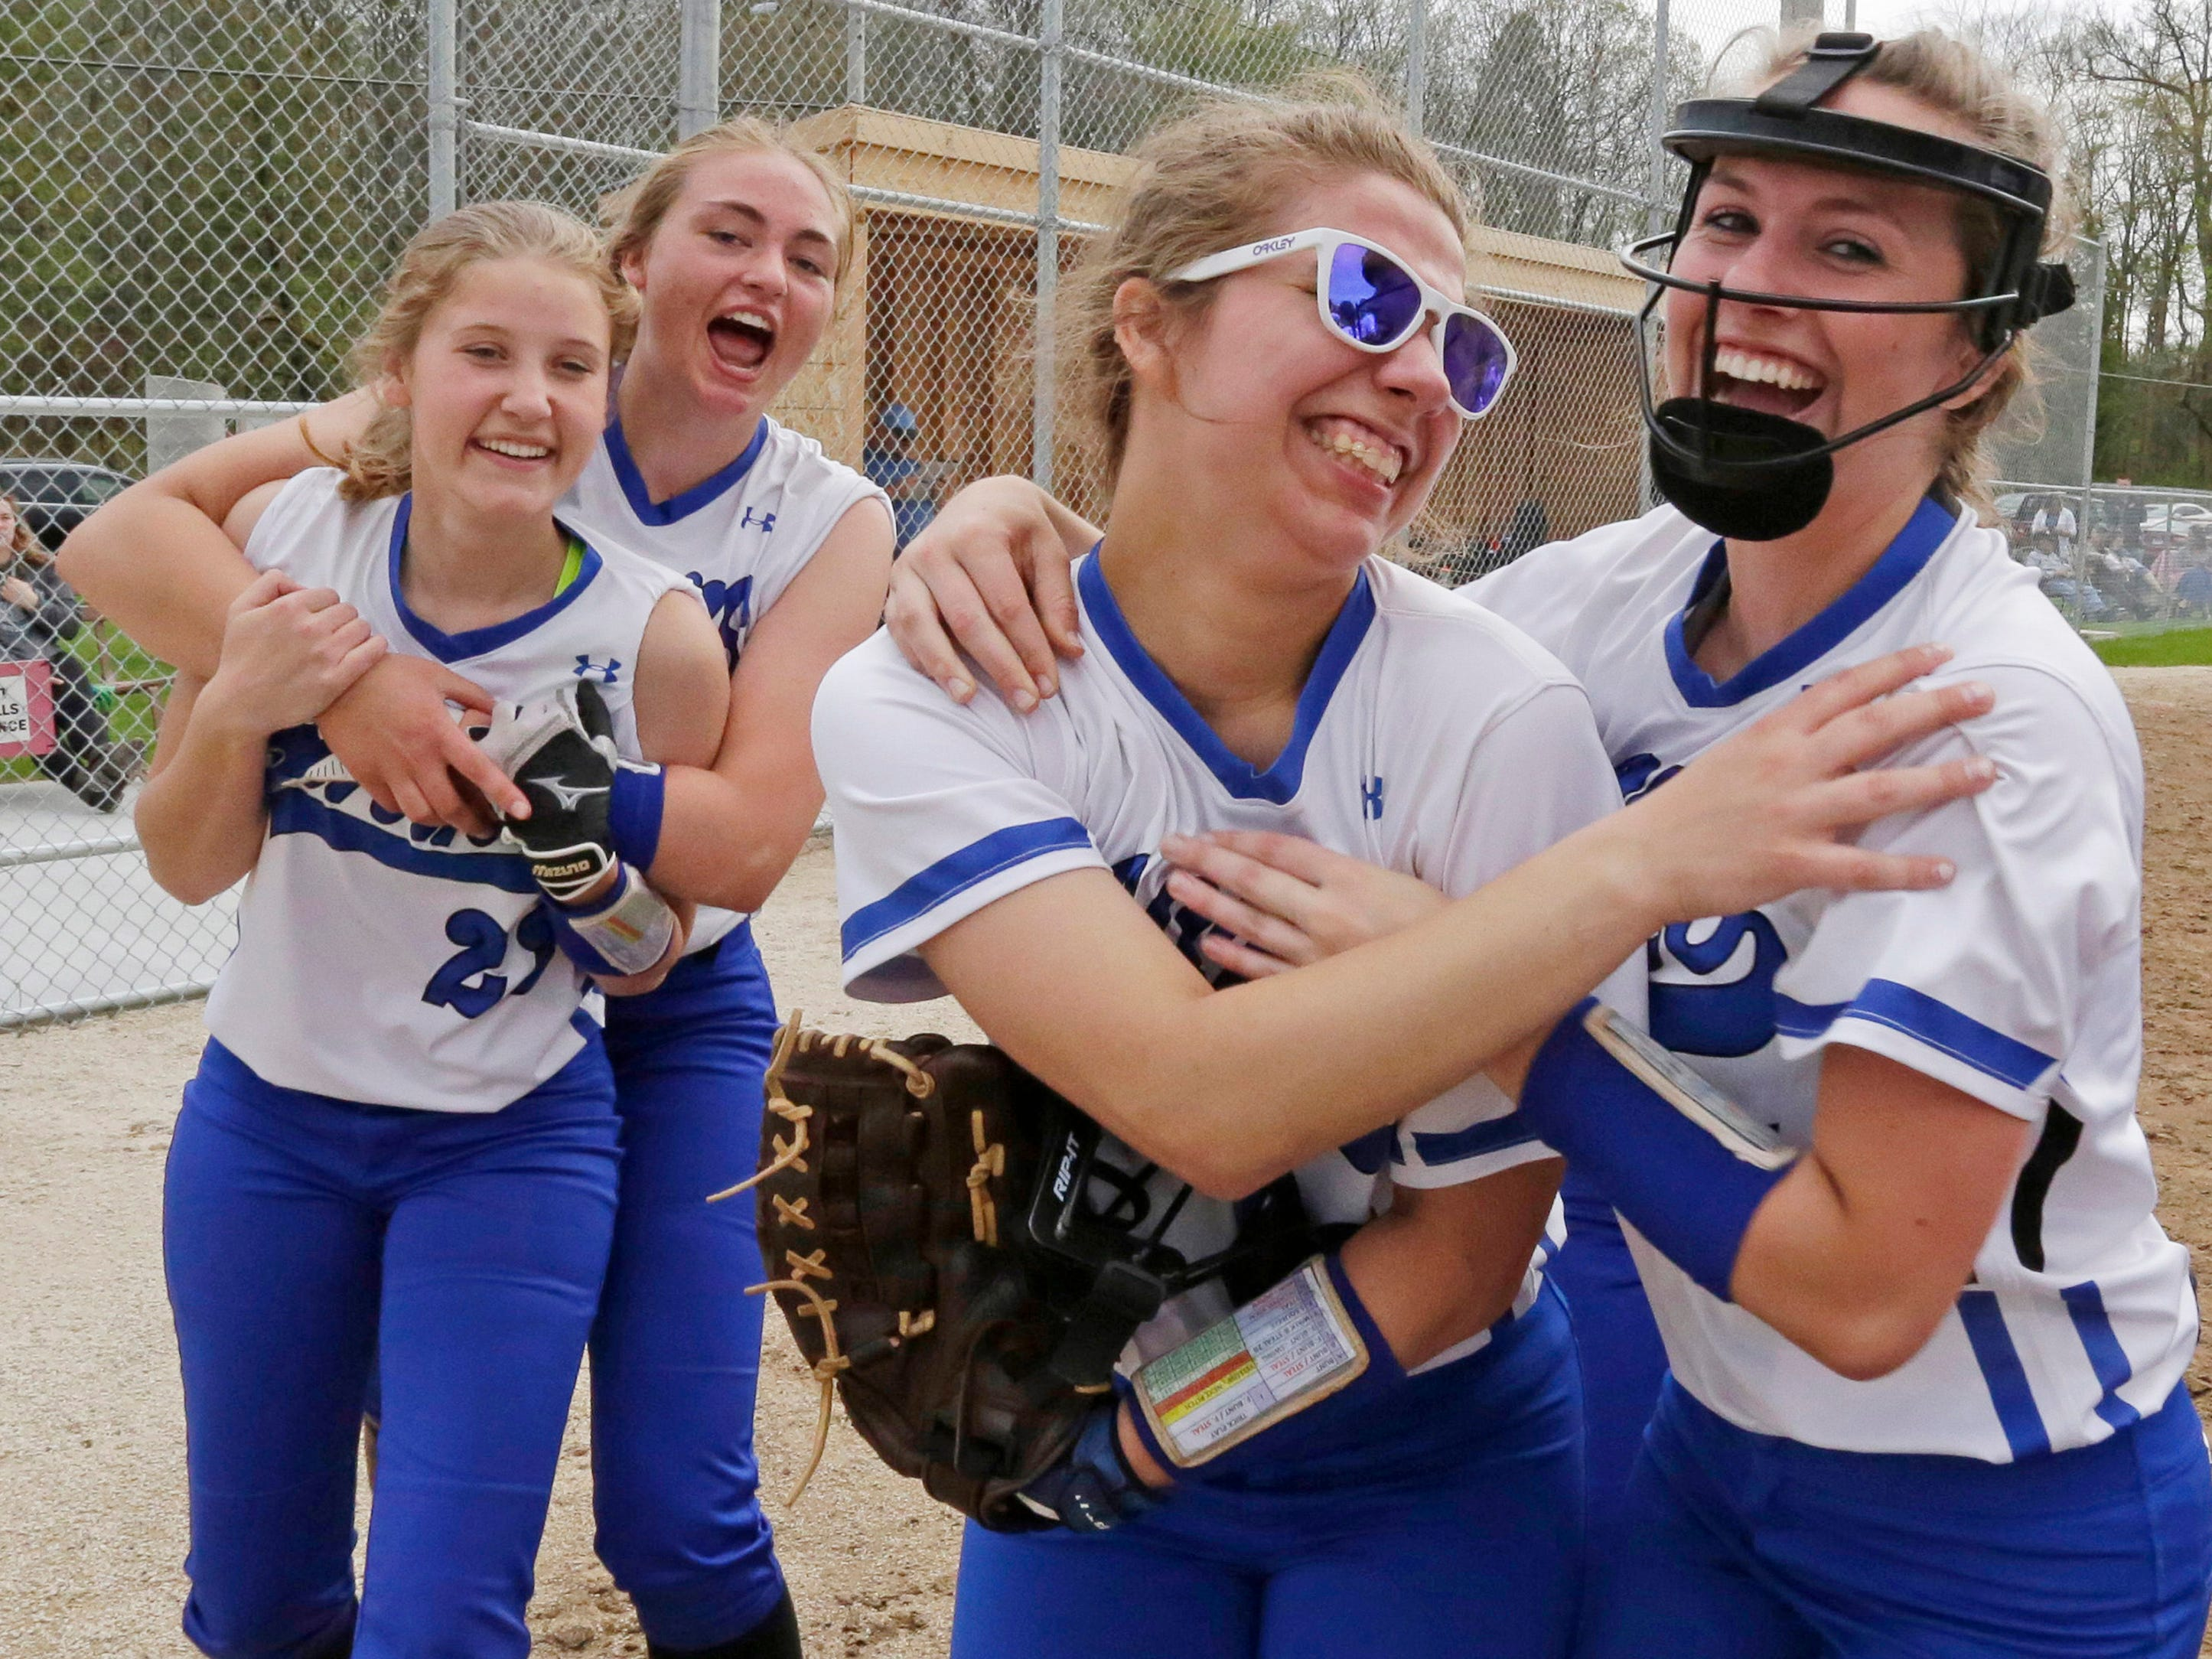 Random Lake softball players celebrate their 6-4 win over Mishicot, Monday, May 14, 2018, in Random Lake, Wis.